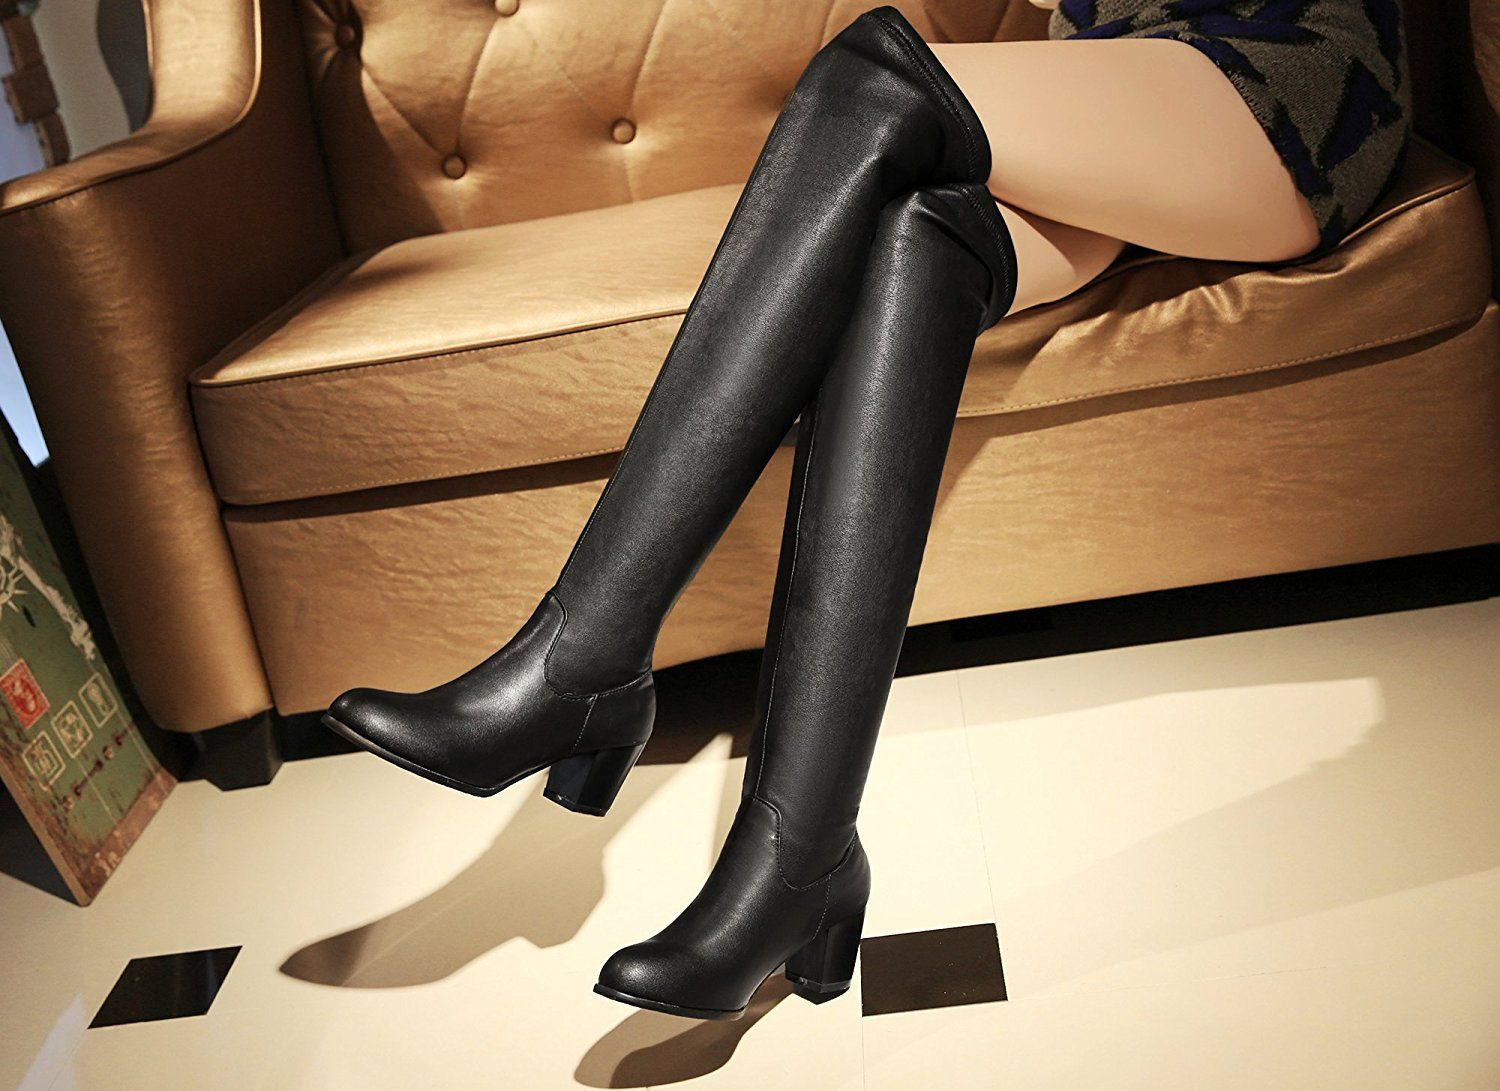 be5025a0d3217 Women Thigh High Boots Elastic Winter Sexy High Heel Over The Knee ...